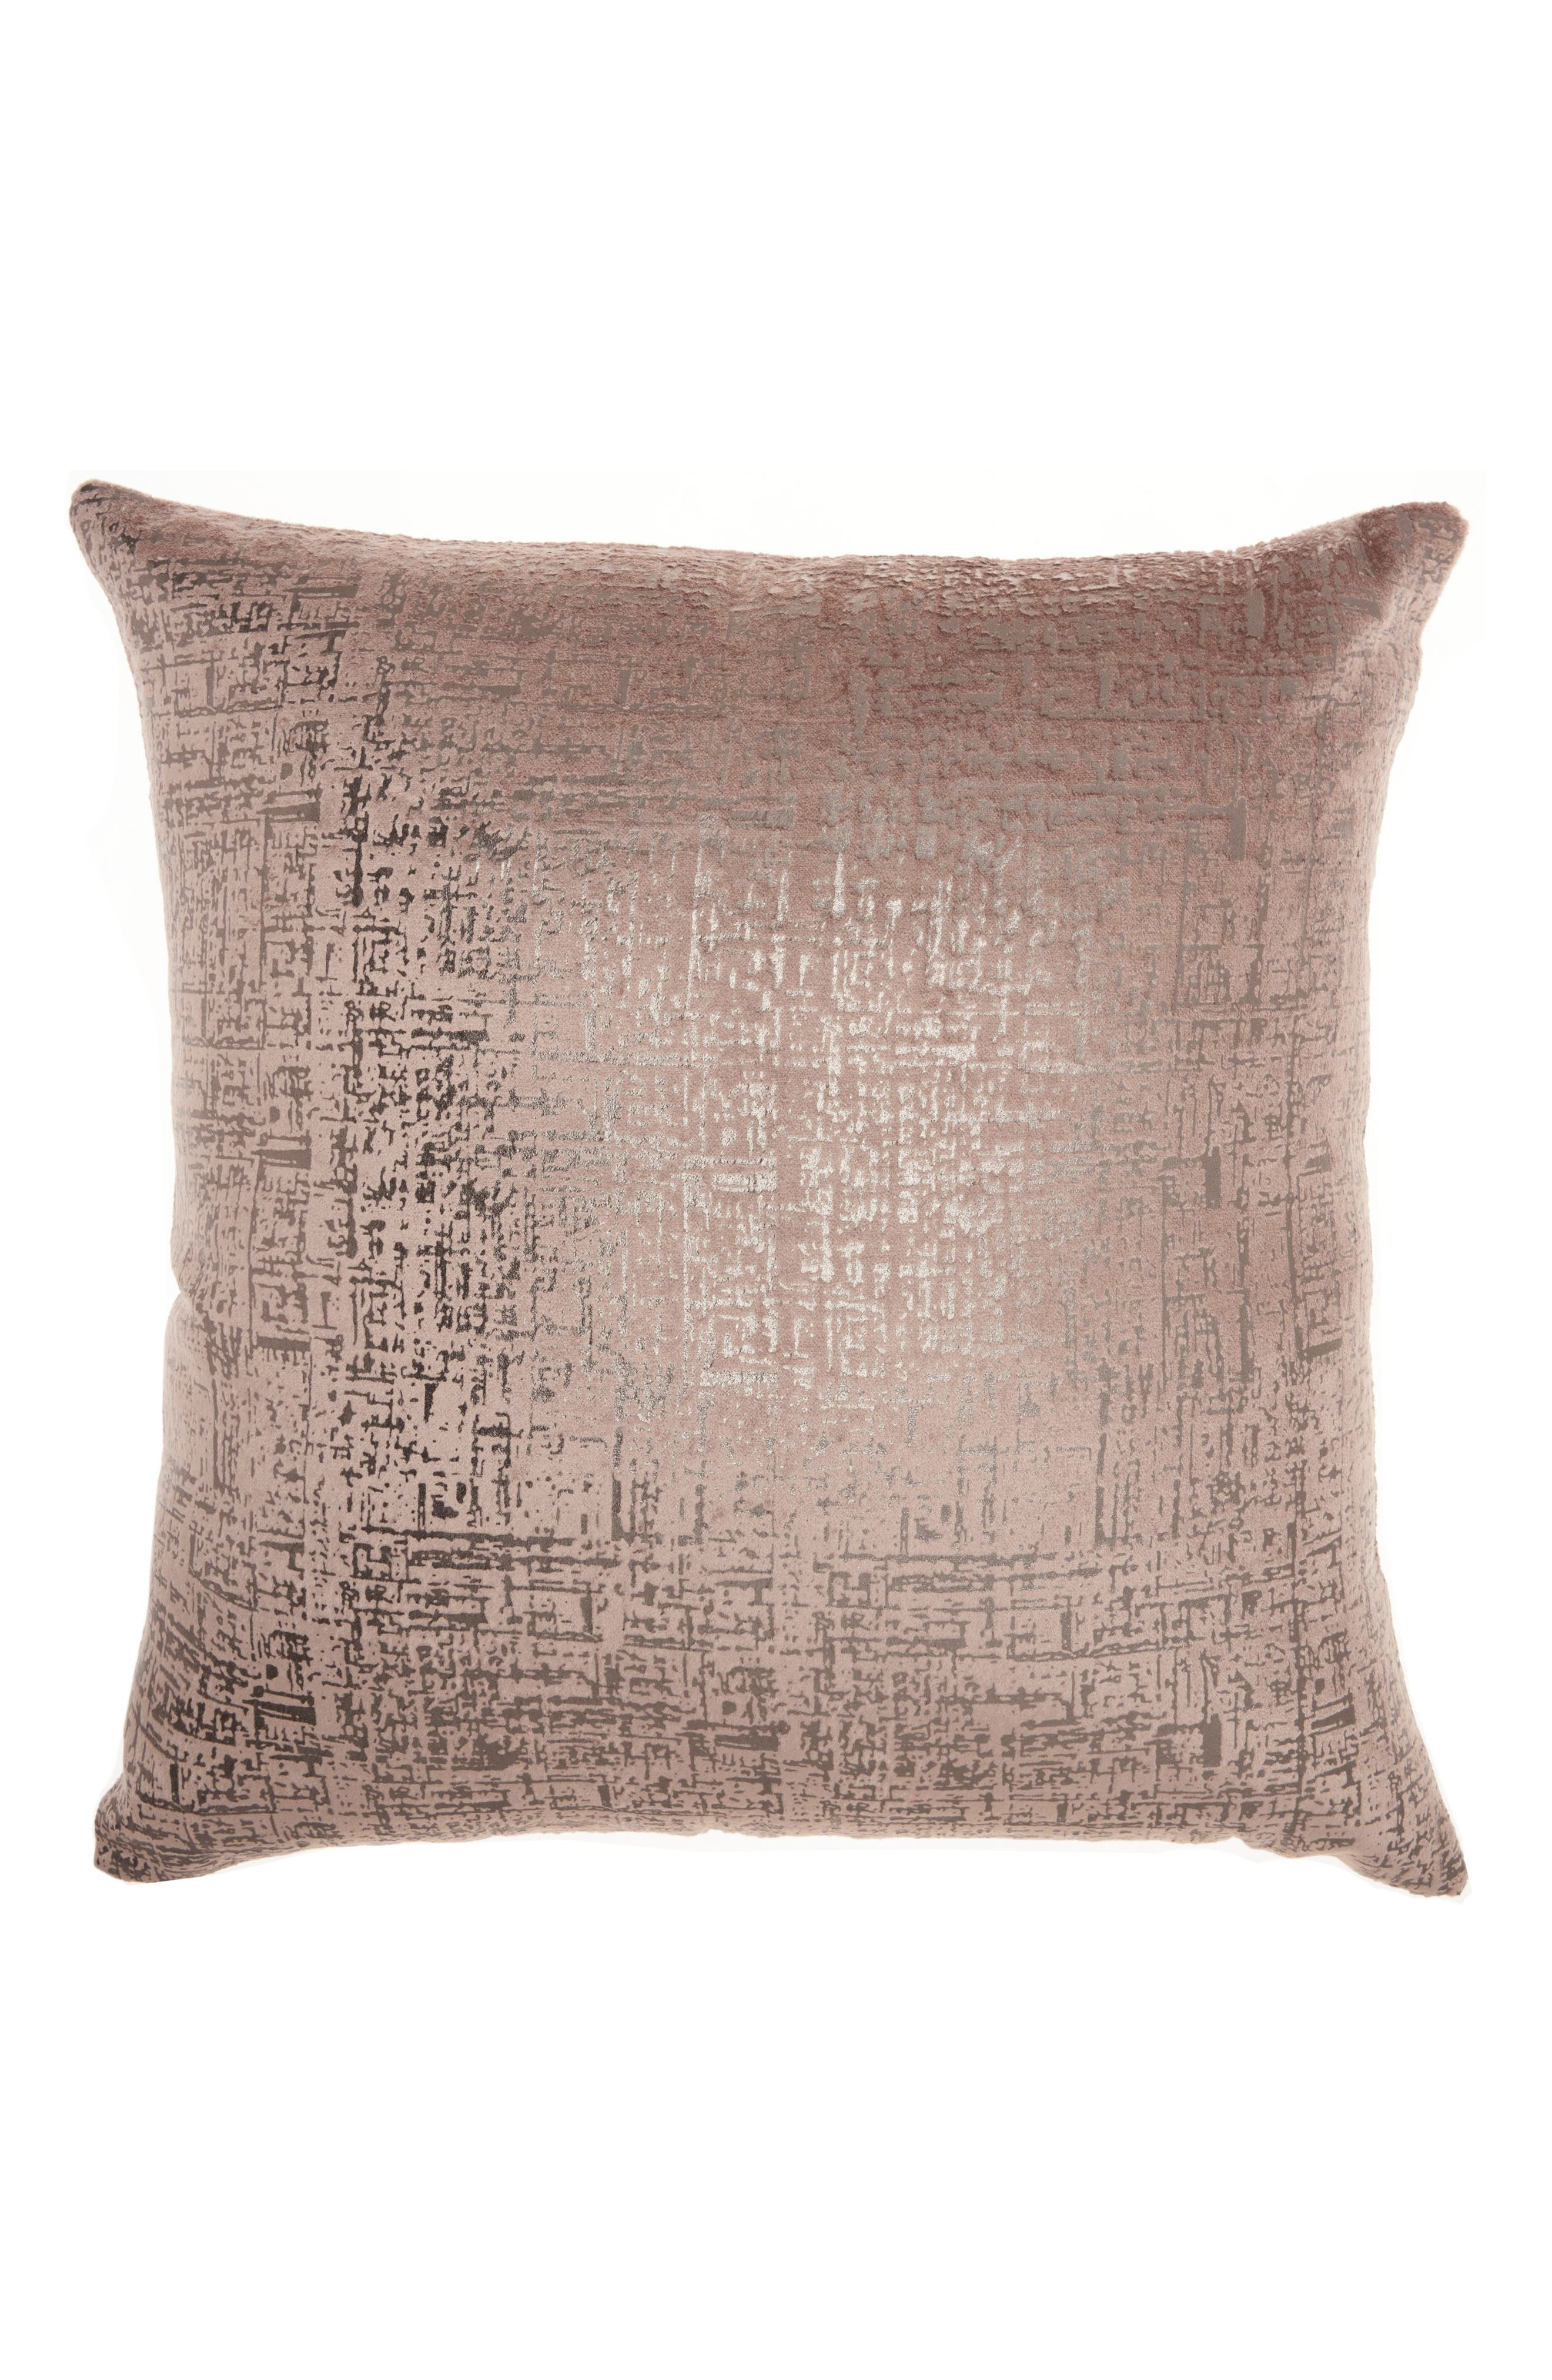 Main Image - Mina Victory Distressed Velvet Accent Pillow